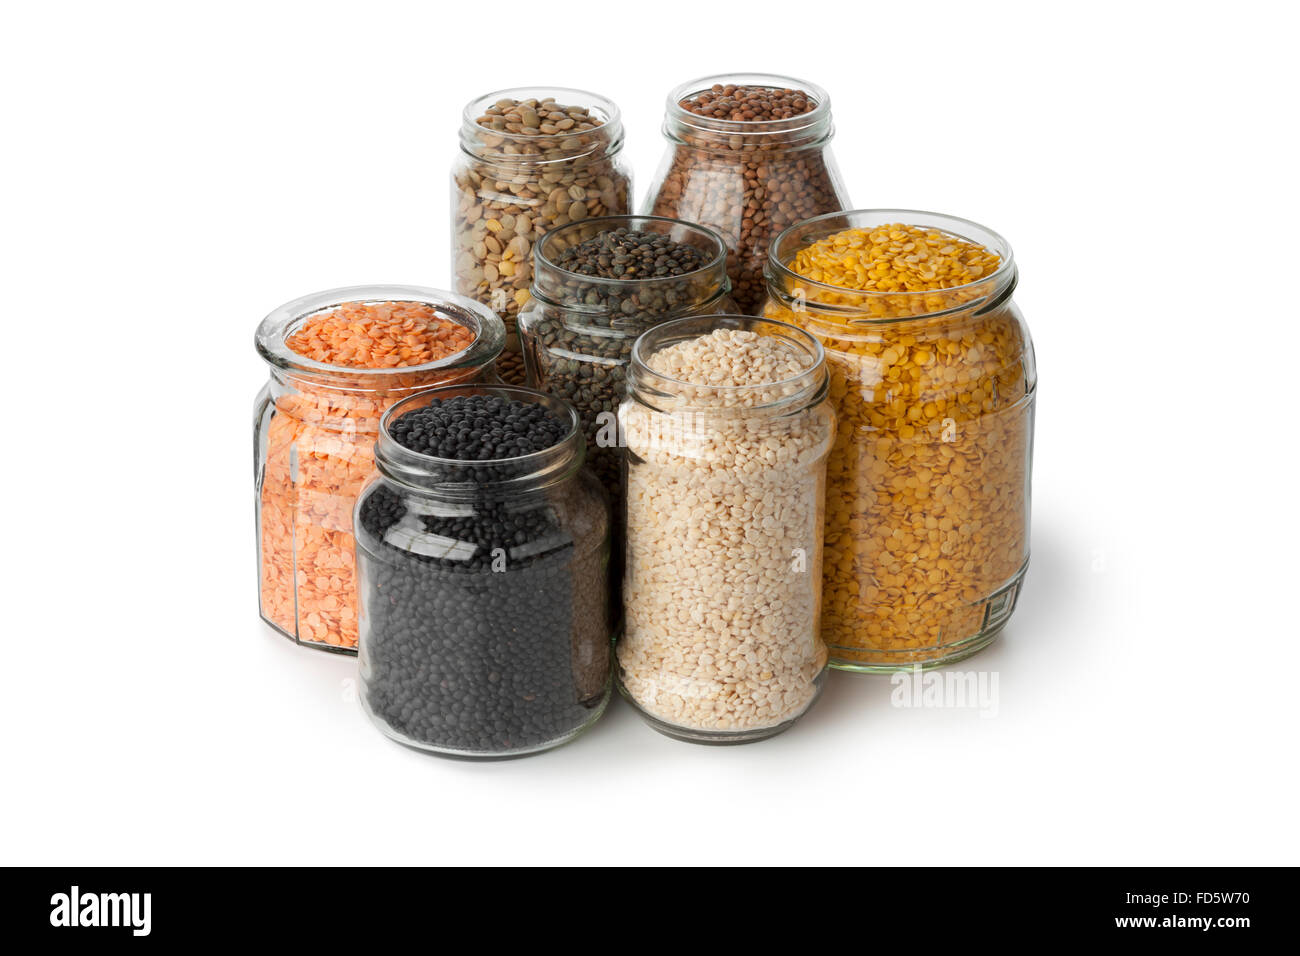 Variety of dried lentils in glass pots on white background - Stock Image